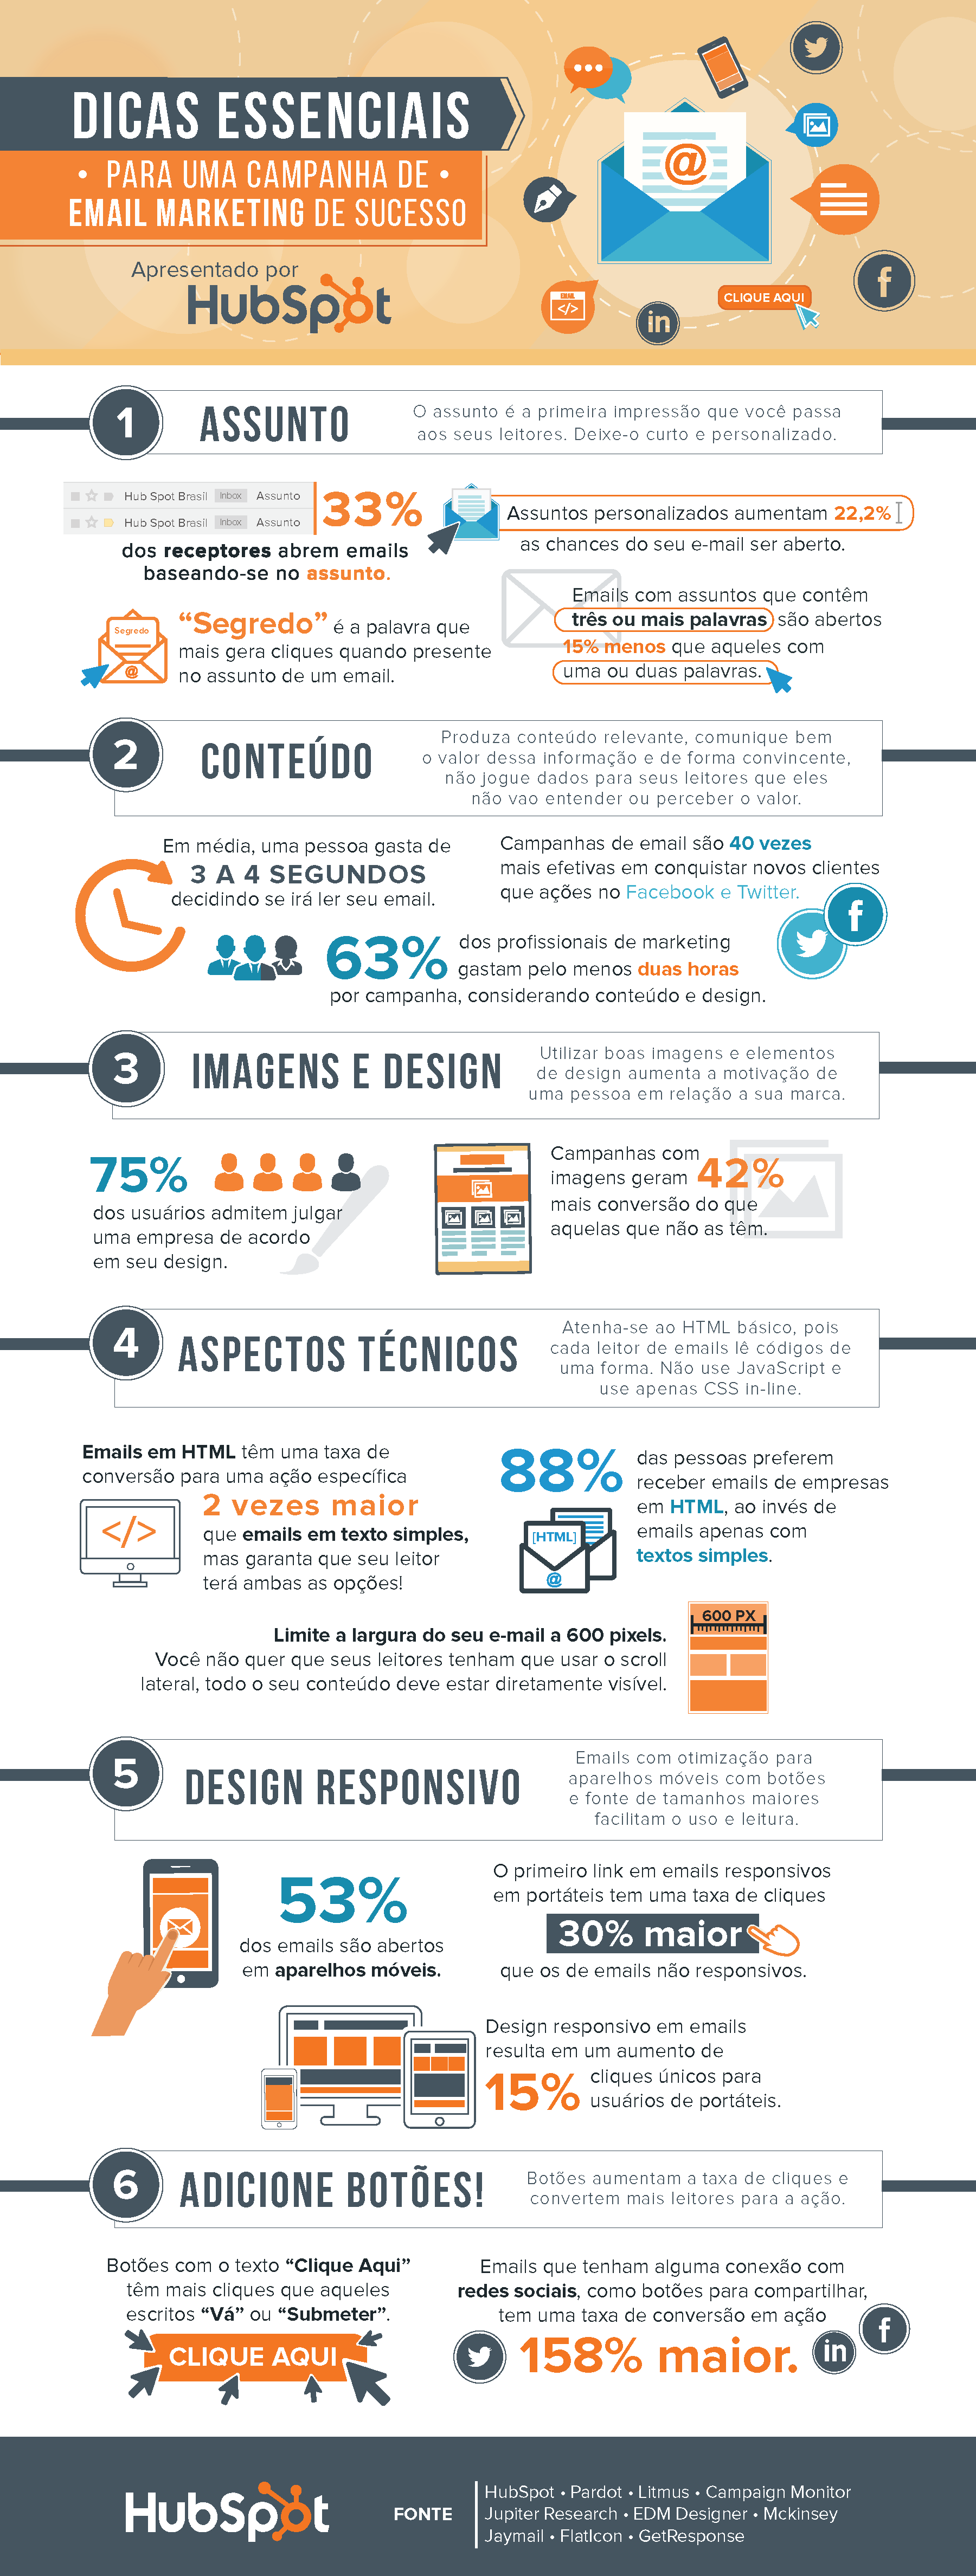 hubspot-email-infographic_1png.png